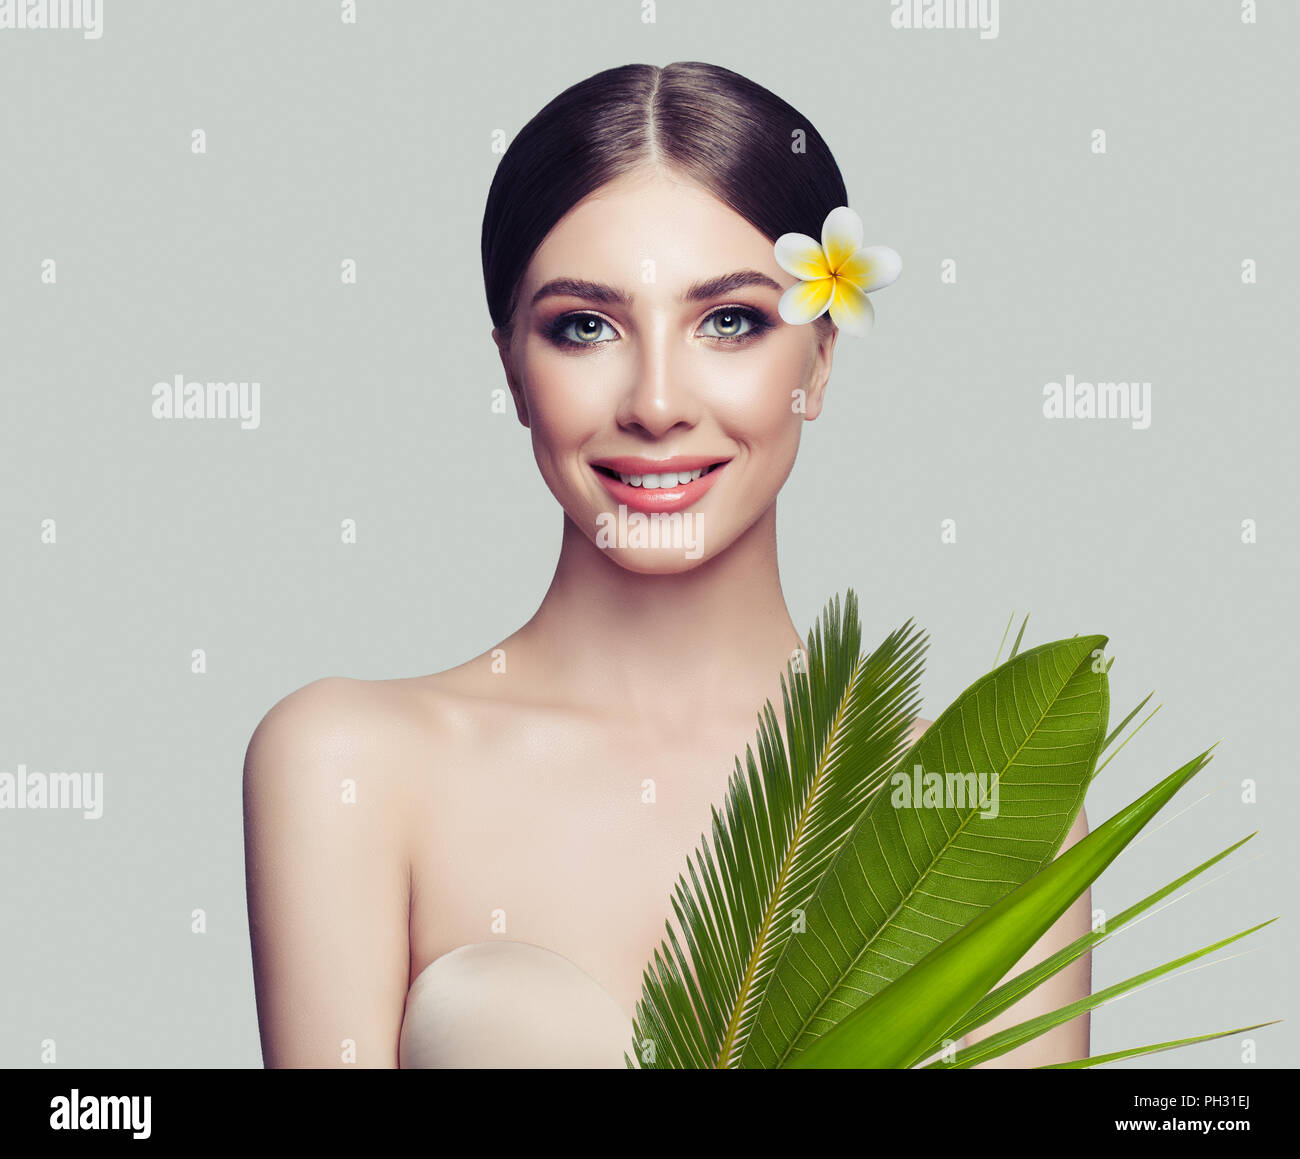 Spa woman with healthy skin, cute smile and tropical leaves and flowers on white background, spa beauty and cosmetology concept - Stock Image